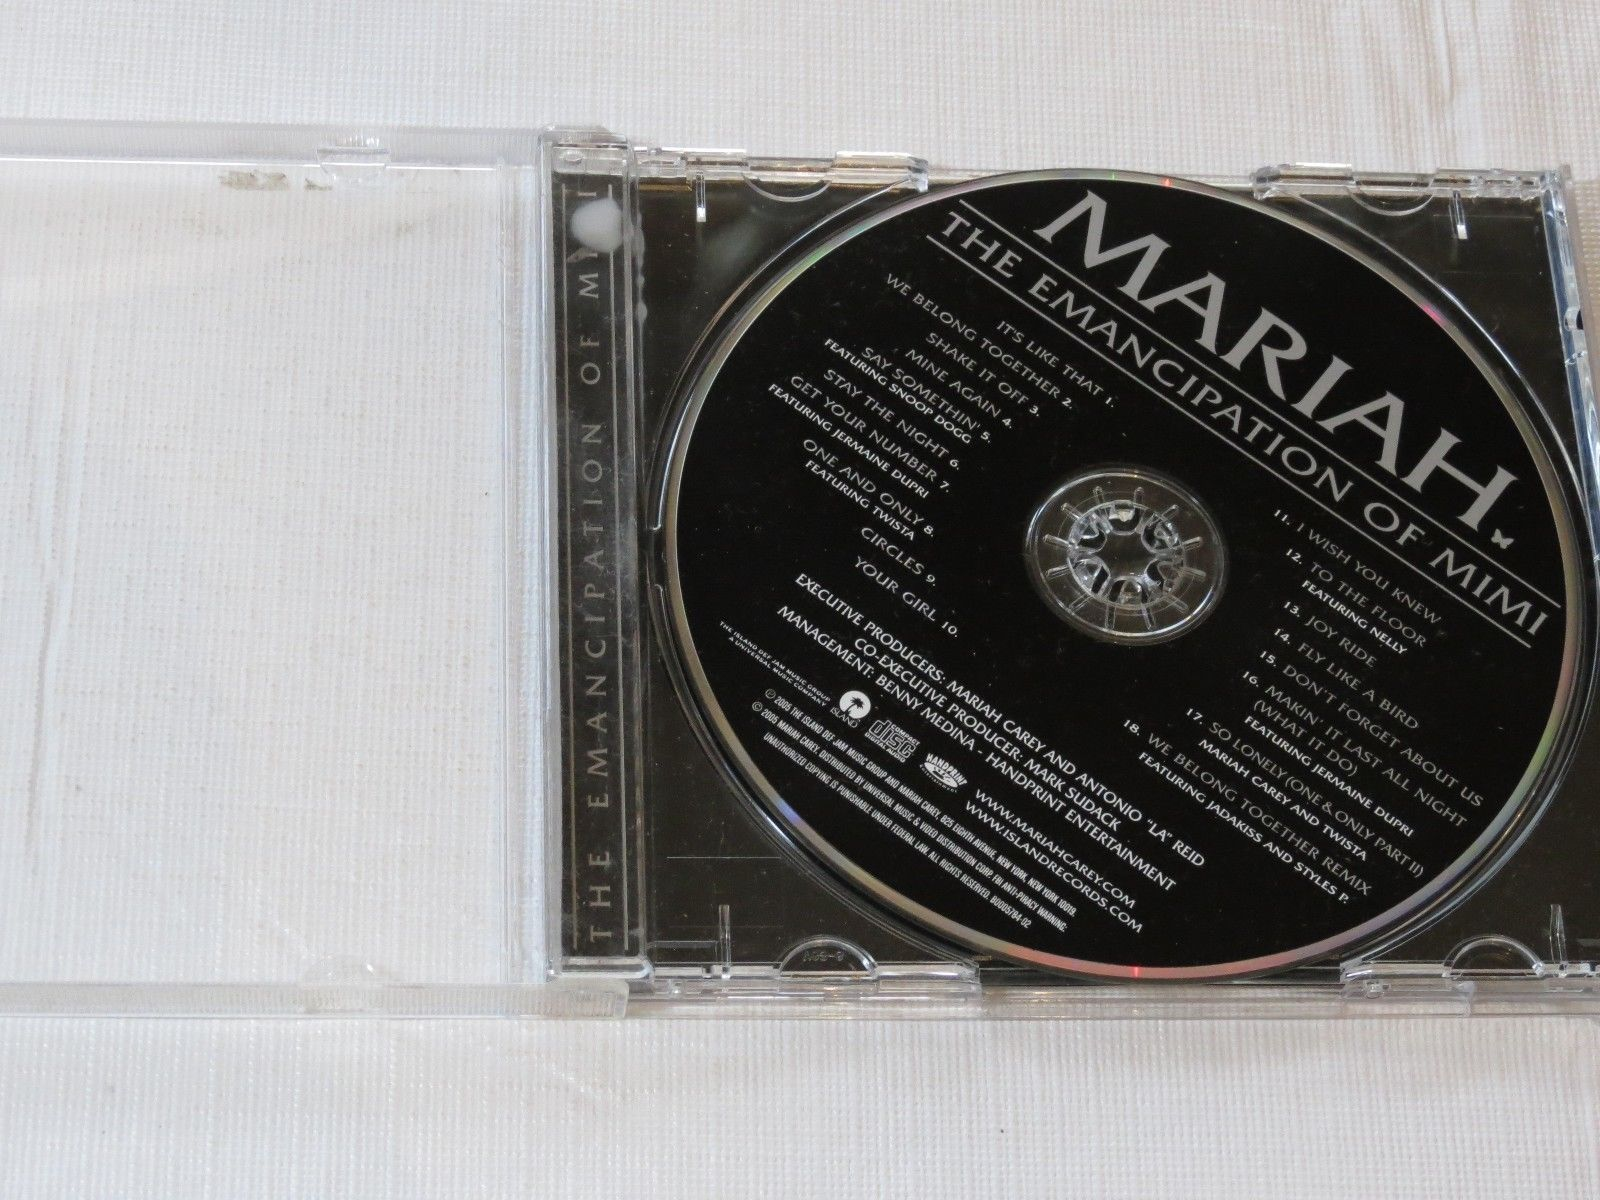 The Emancipation of Mimi by Mariah Carey CD 2005 Island Def Jam Music Group